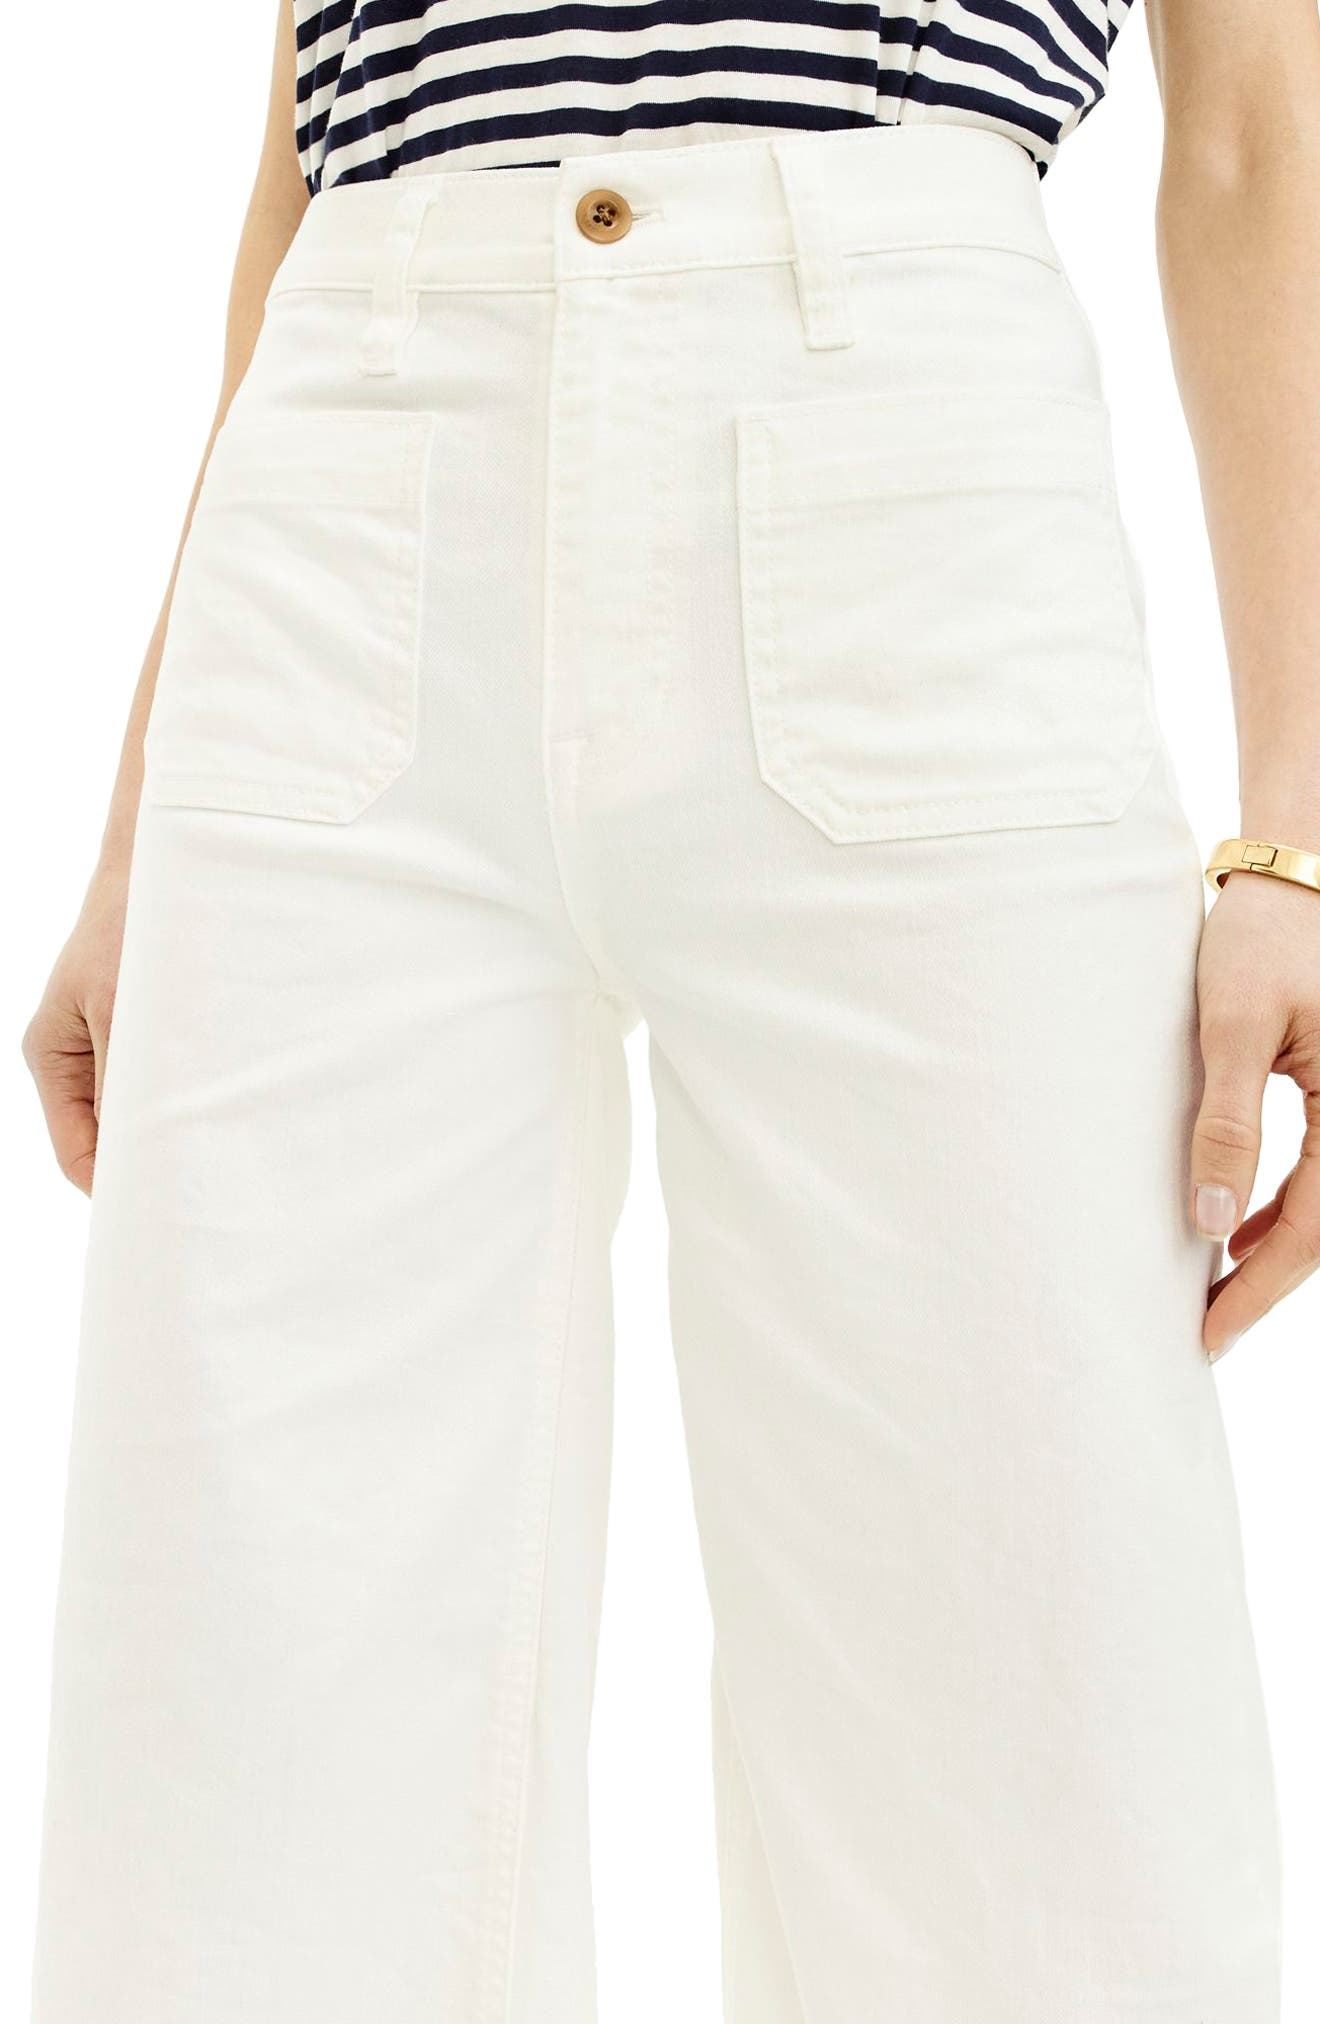 Point Sur Wide Leg Crop Jeans,                             Alternate thumbnail 3, color,                             100